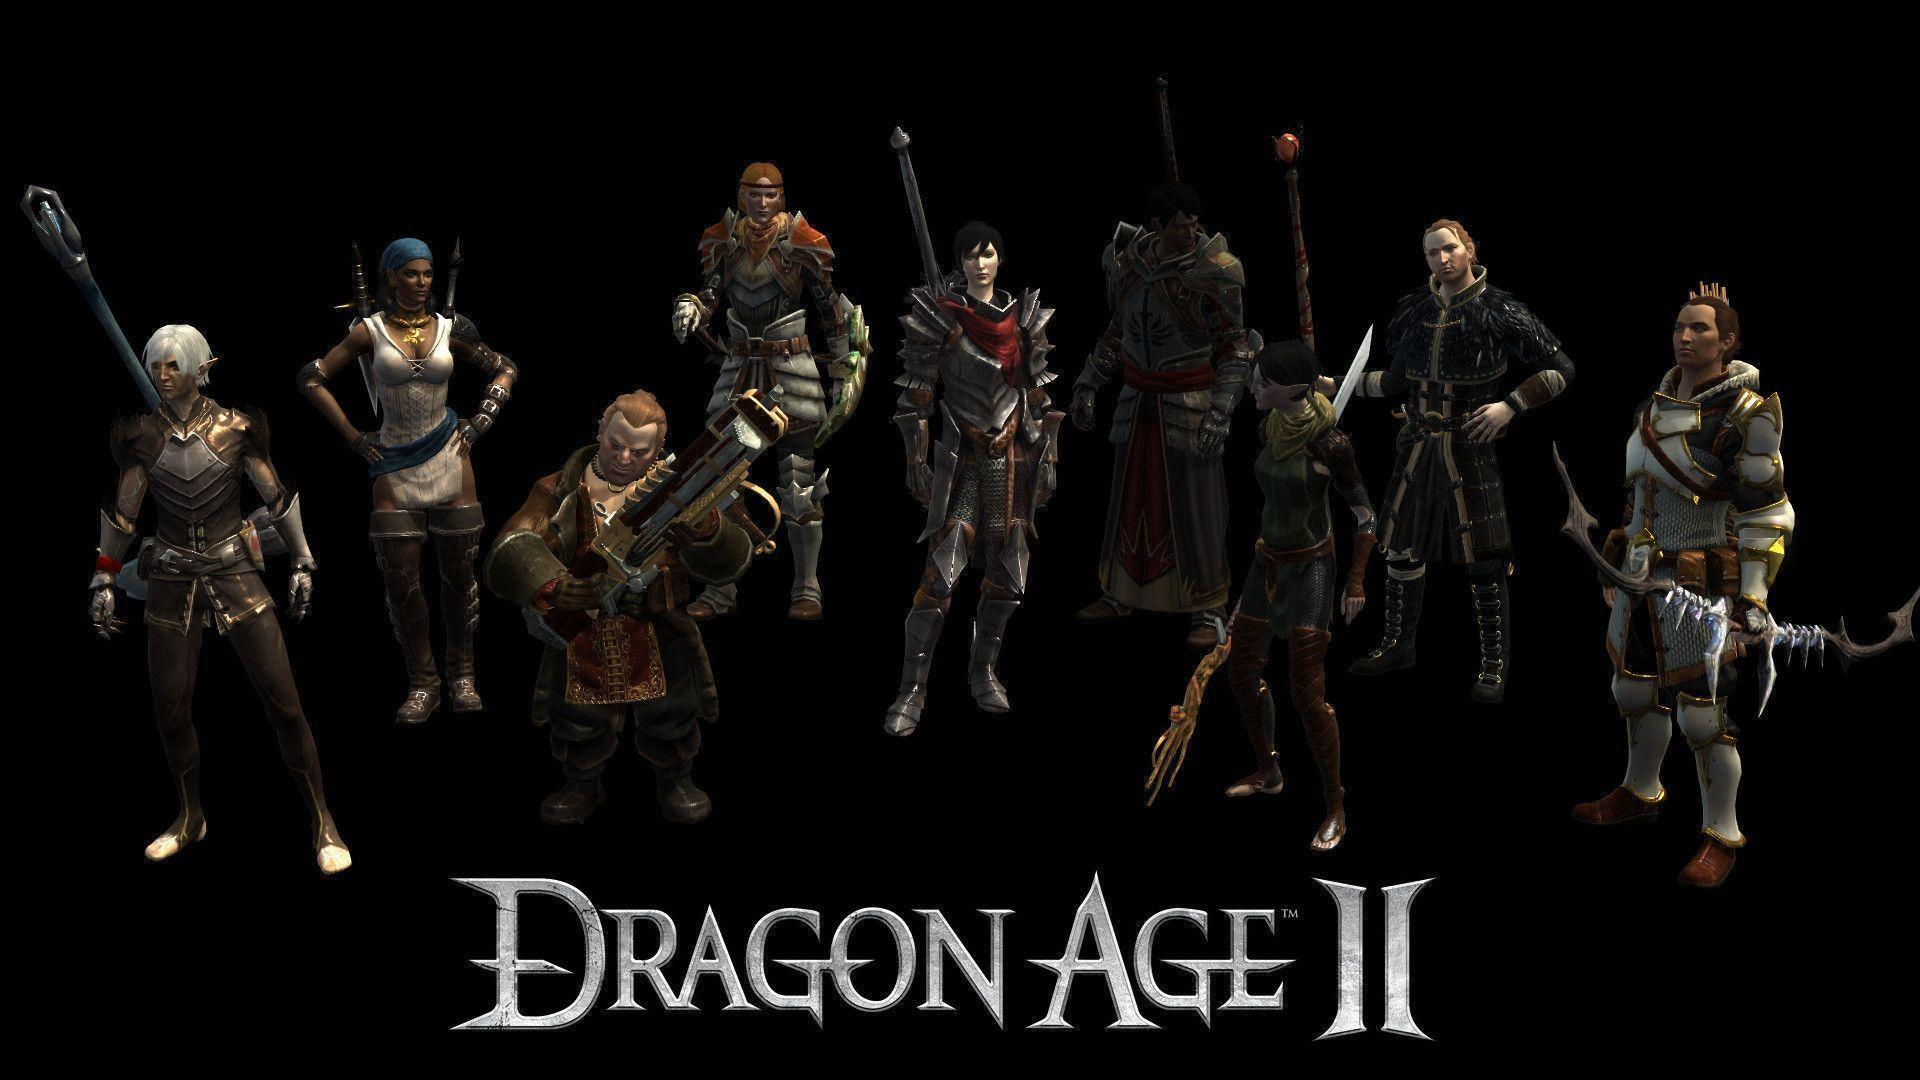 Dragon age 2 cover wallpapers 4